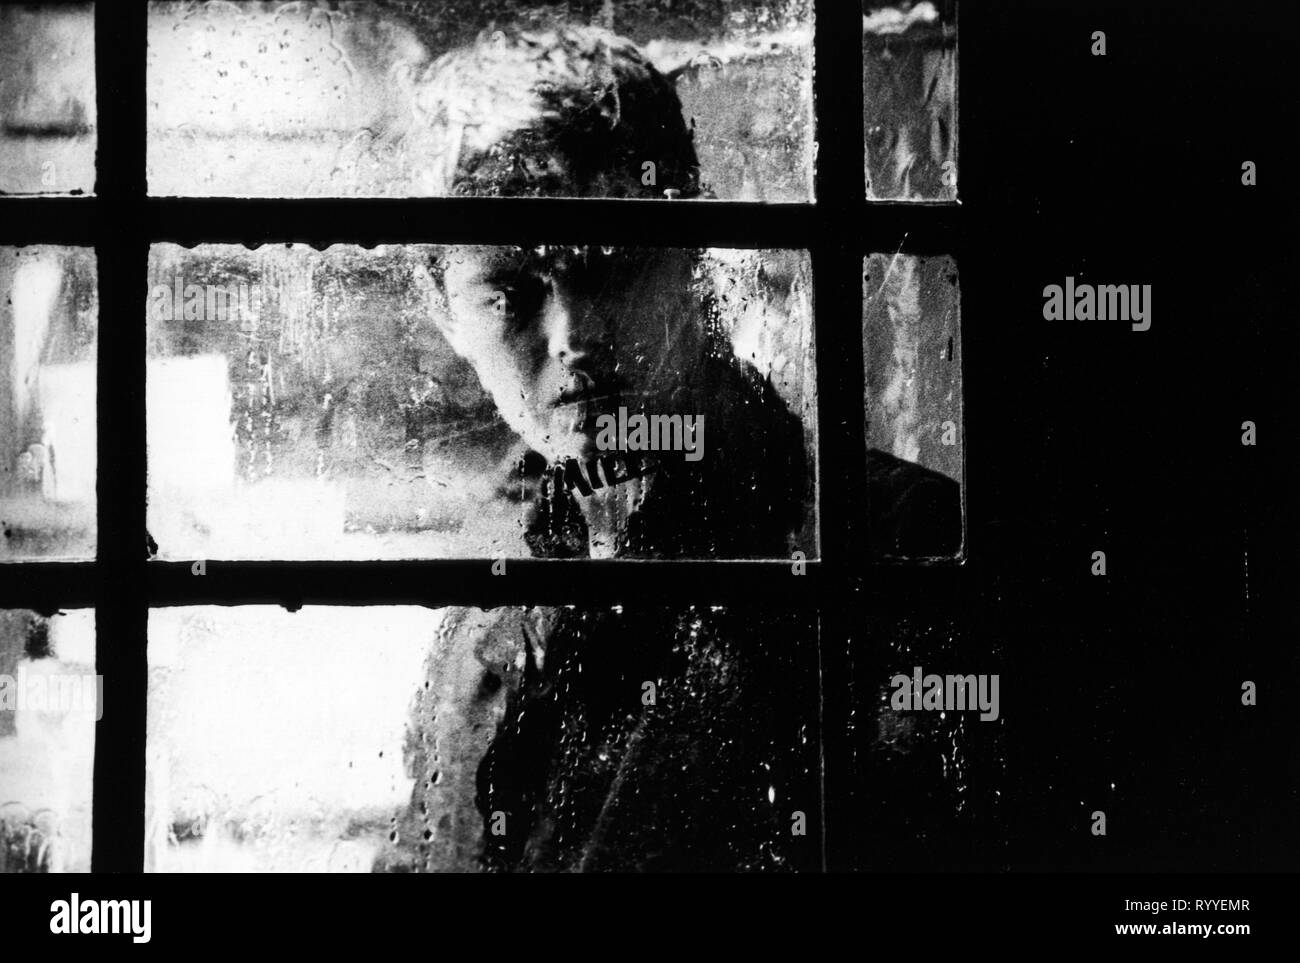 SAM RILEY, CONTROL, 2007 - Stock Image